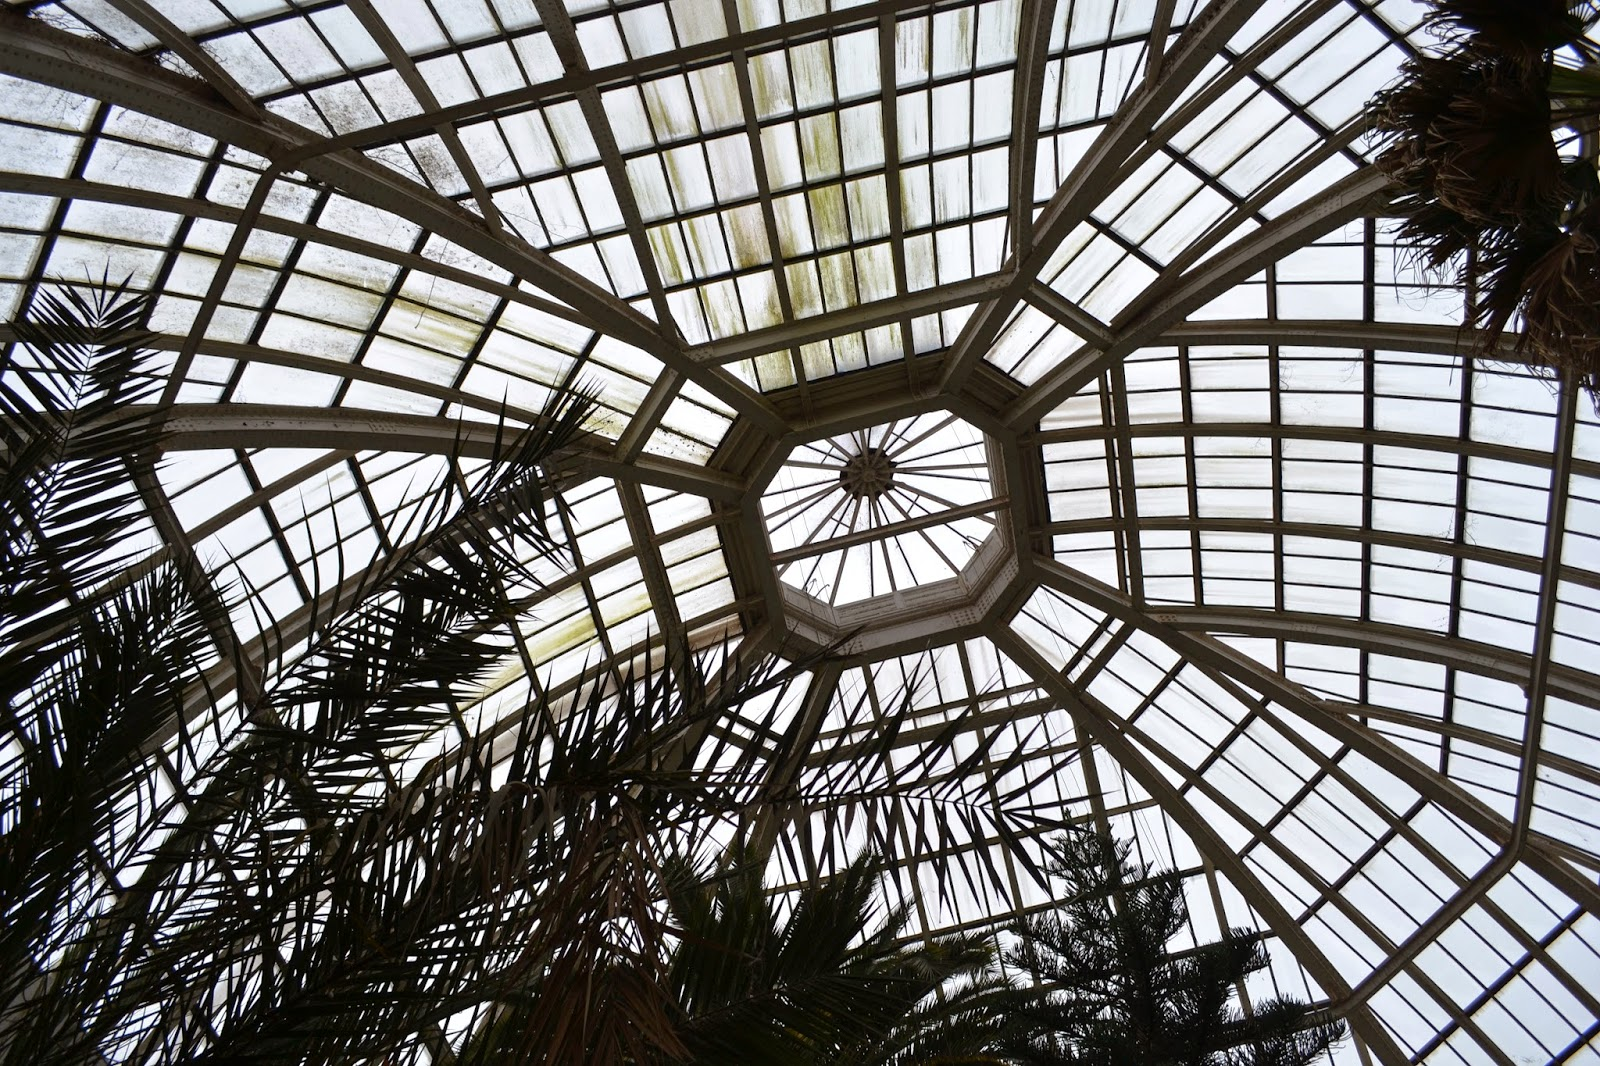 glasshouse roof, avery hill winter gardens, eltham, london